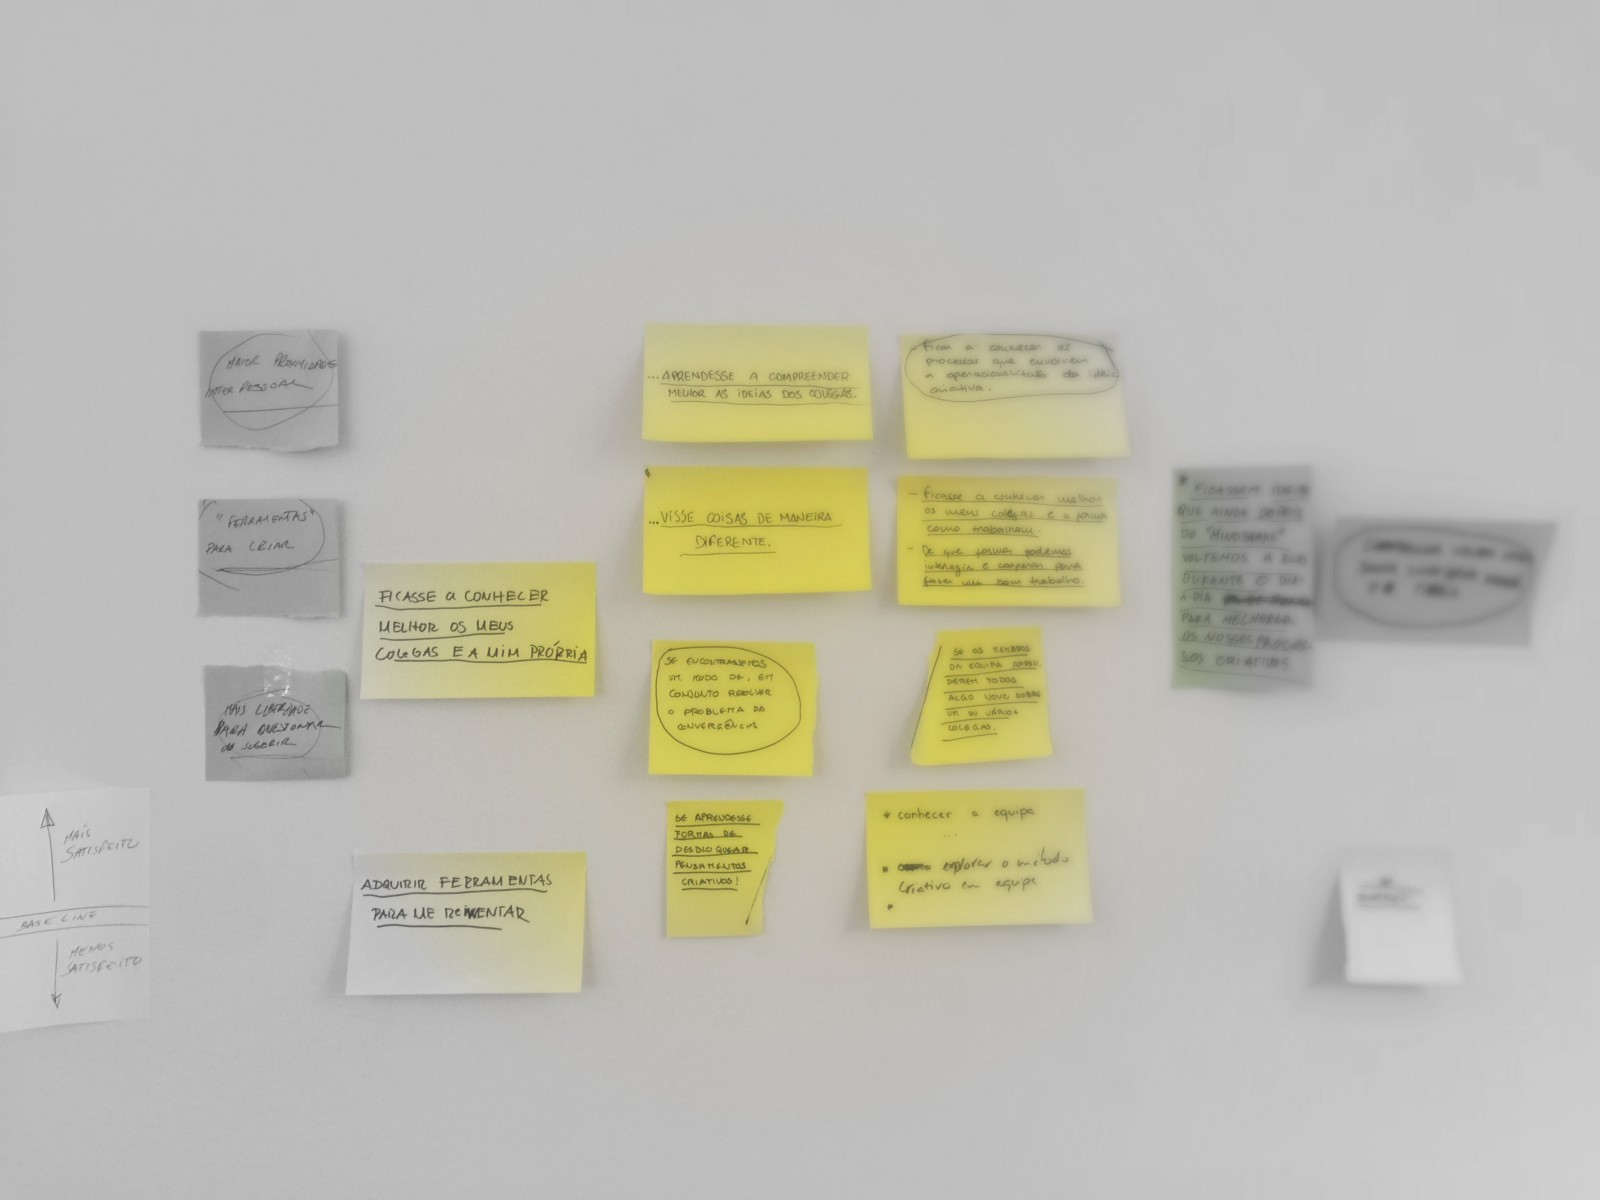 Simple Creativity Techniques You Should Try With Your Team